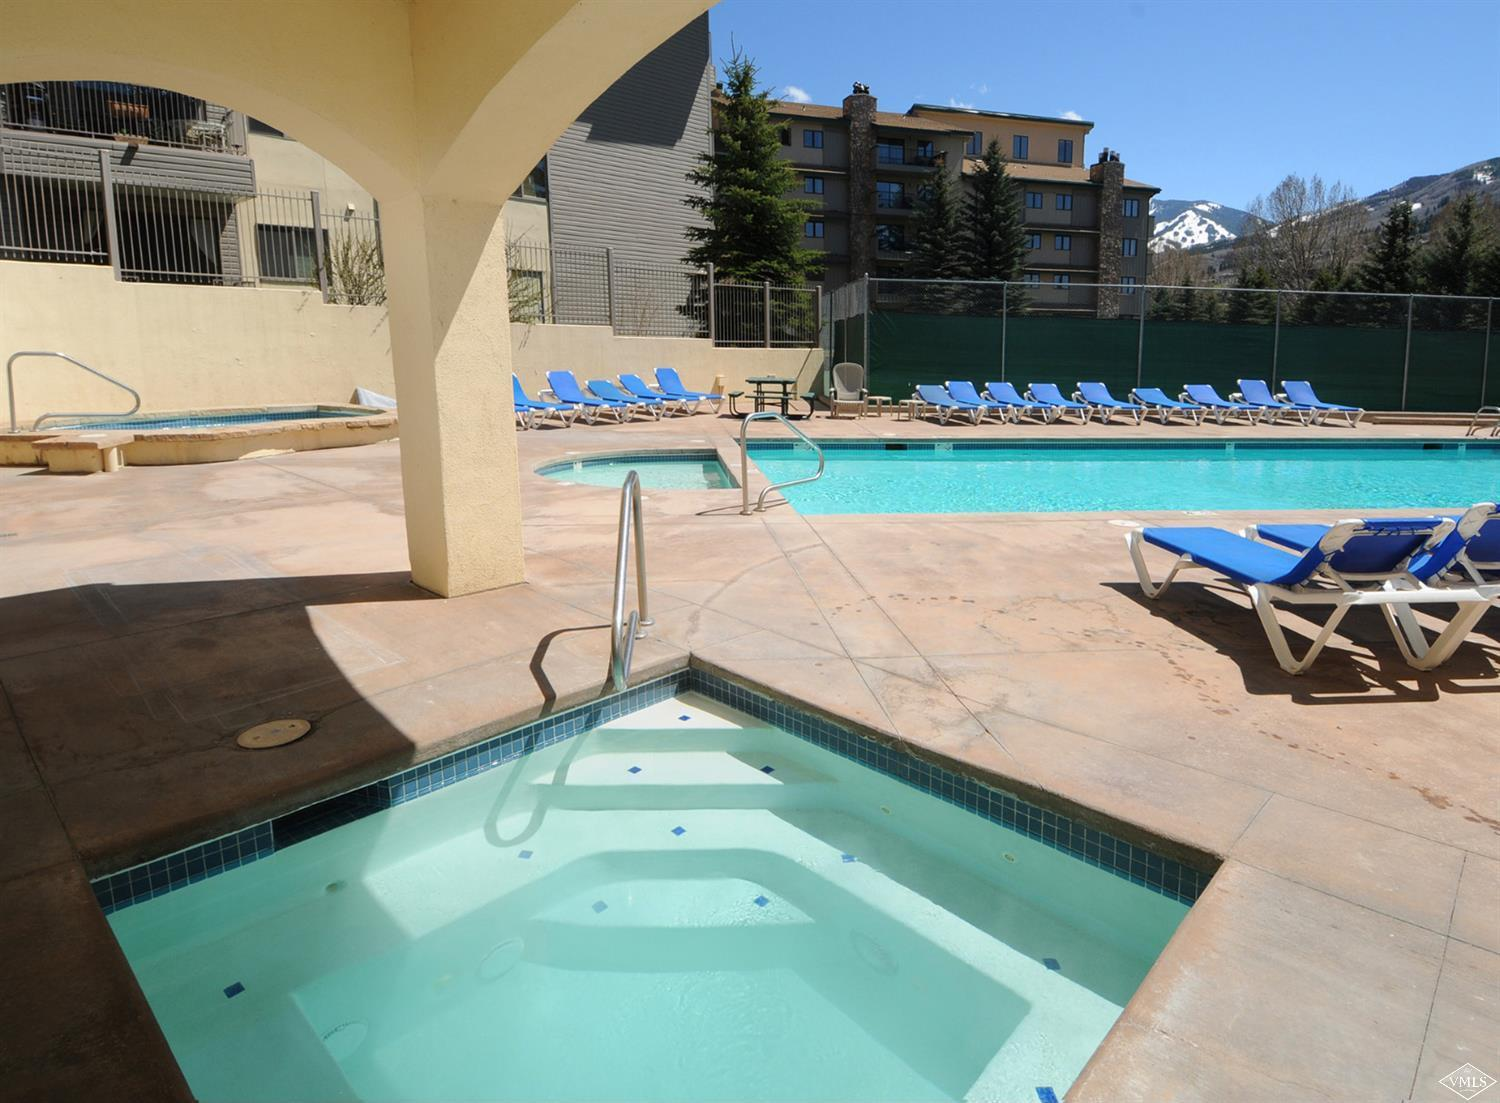 This light & bright ground floor 2bd plus sleeping den/3-bath residence checks all the boxes. Centrally located in the Vail Valley boasting amenities such as year-round pool, hot tubs, tennis courts & private shuttle to ski Beaver Creek & Vail. Just blocks to restaurants, Avon Rec Center, Nottingham lake with the BEACH and on the in-town shuttle service. The floor plan offers maximum rental income options with the lock-off capabilities. Offered fully furnished. Simply a great vacation home.